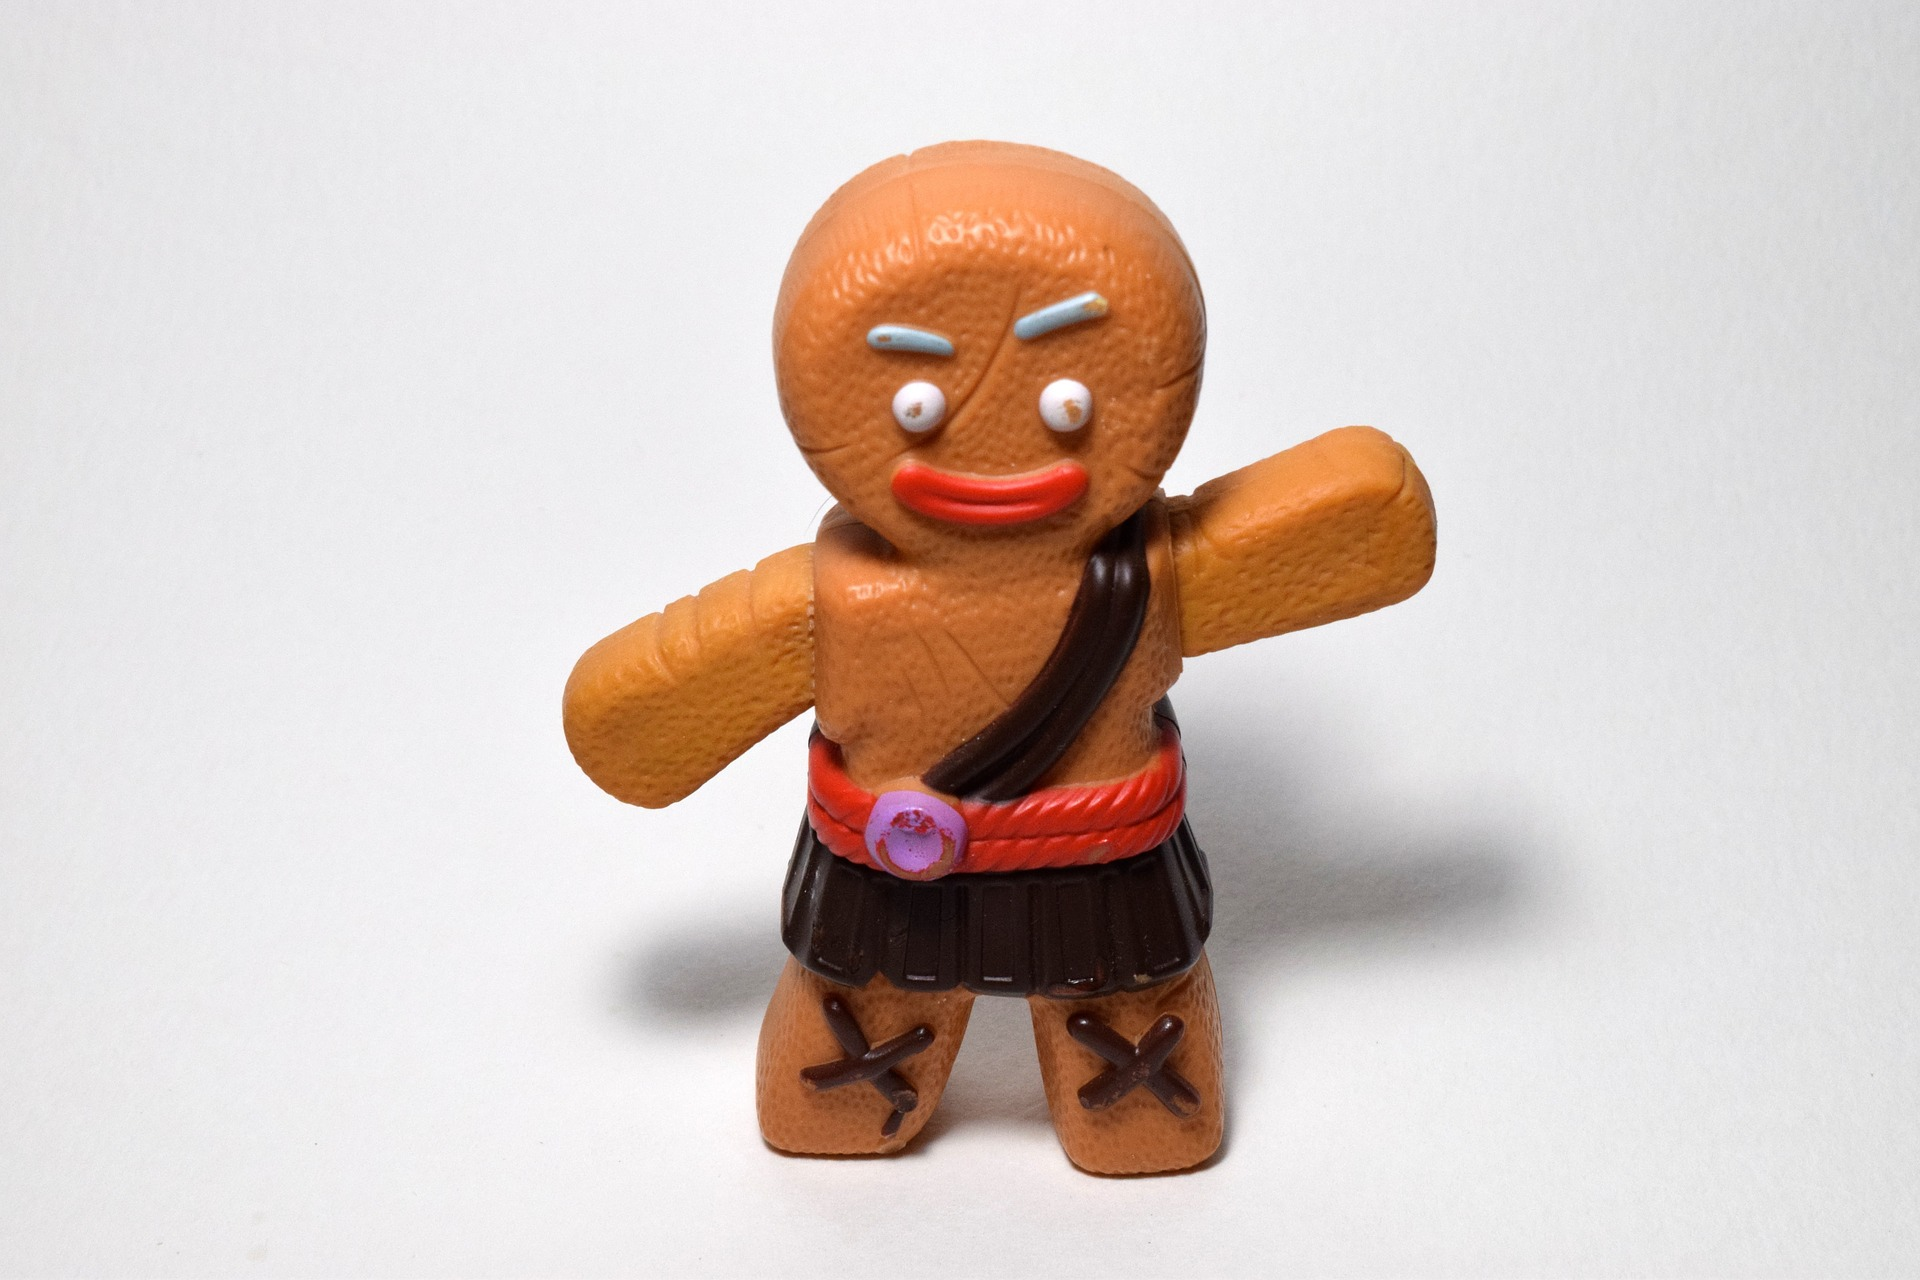 """Down with the gingerbread gluttony!"" (Photo courtesy of Pixabay/HannahLouise123)"